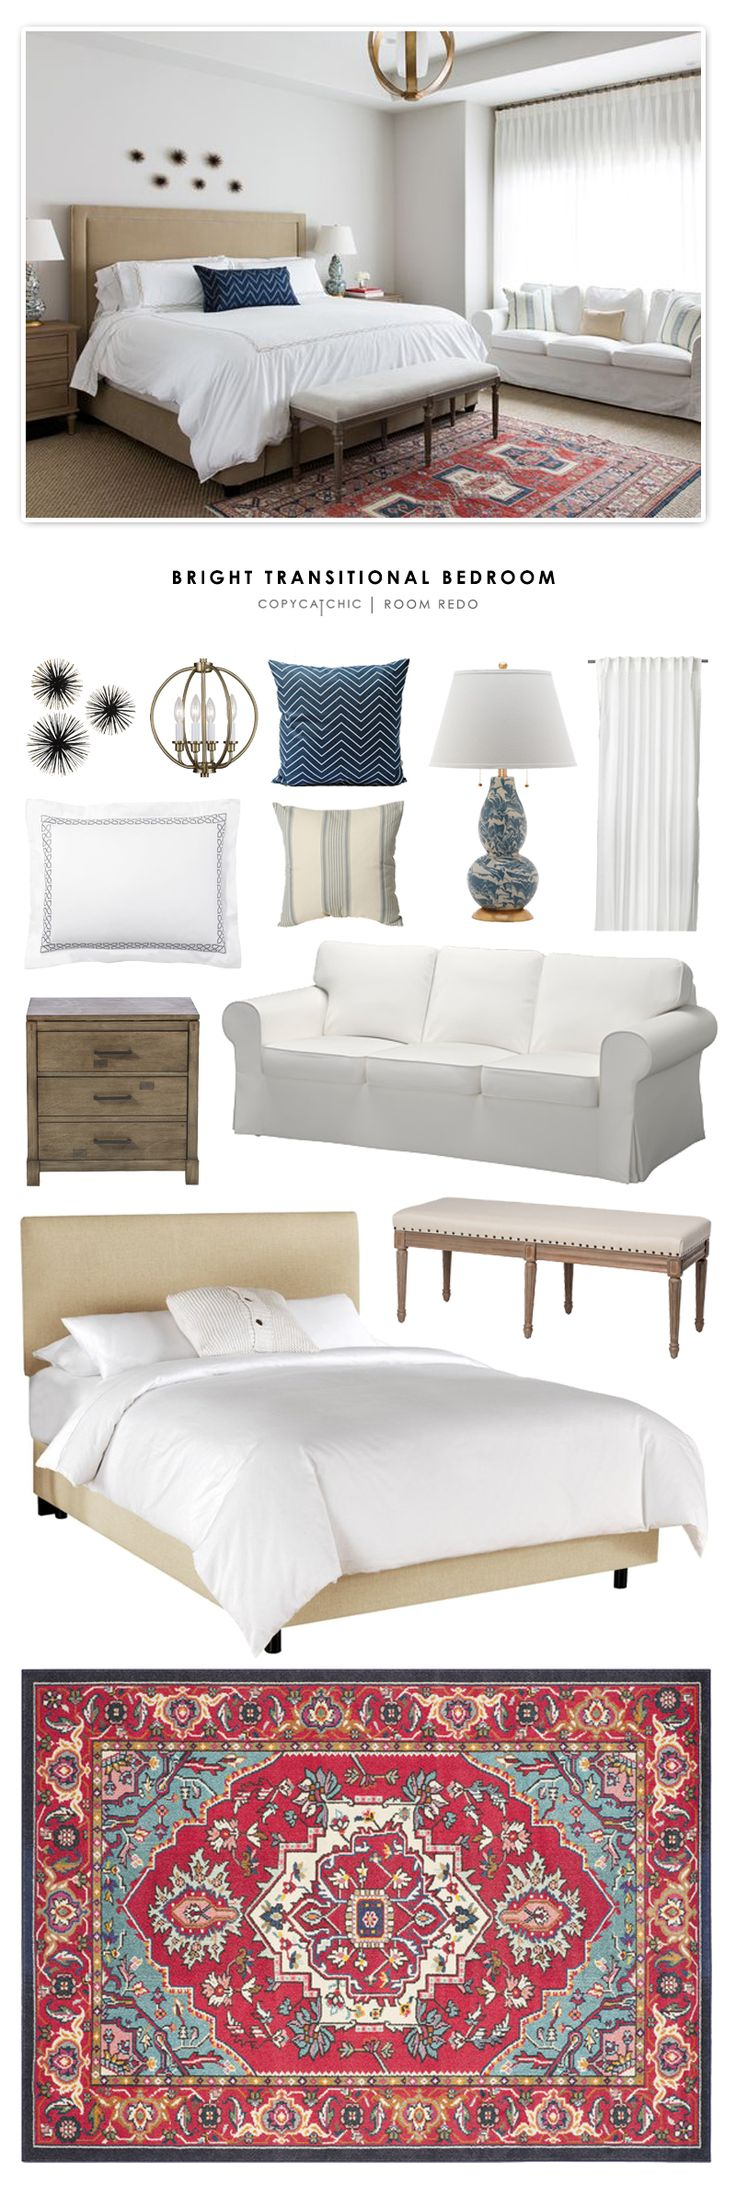 best 25+ transitional bedroom ideas on pinterest | transitional